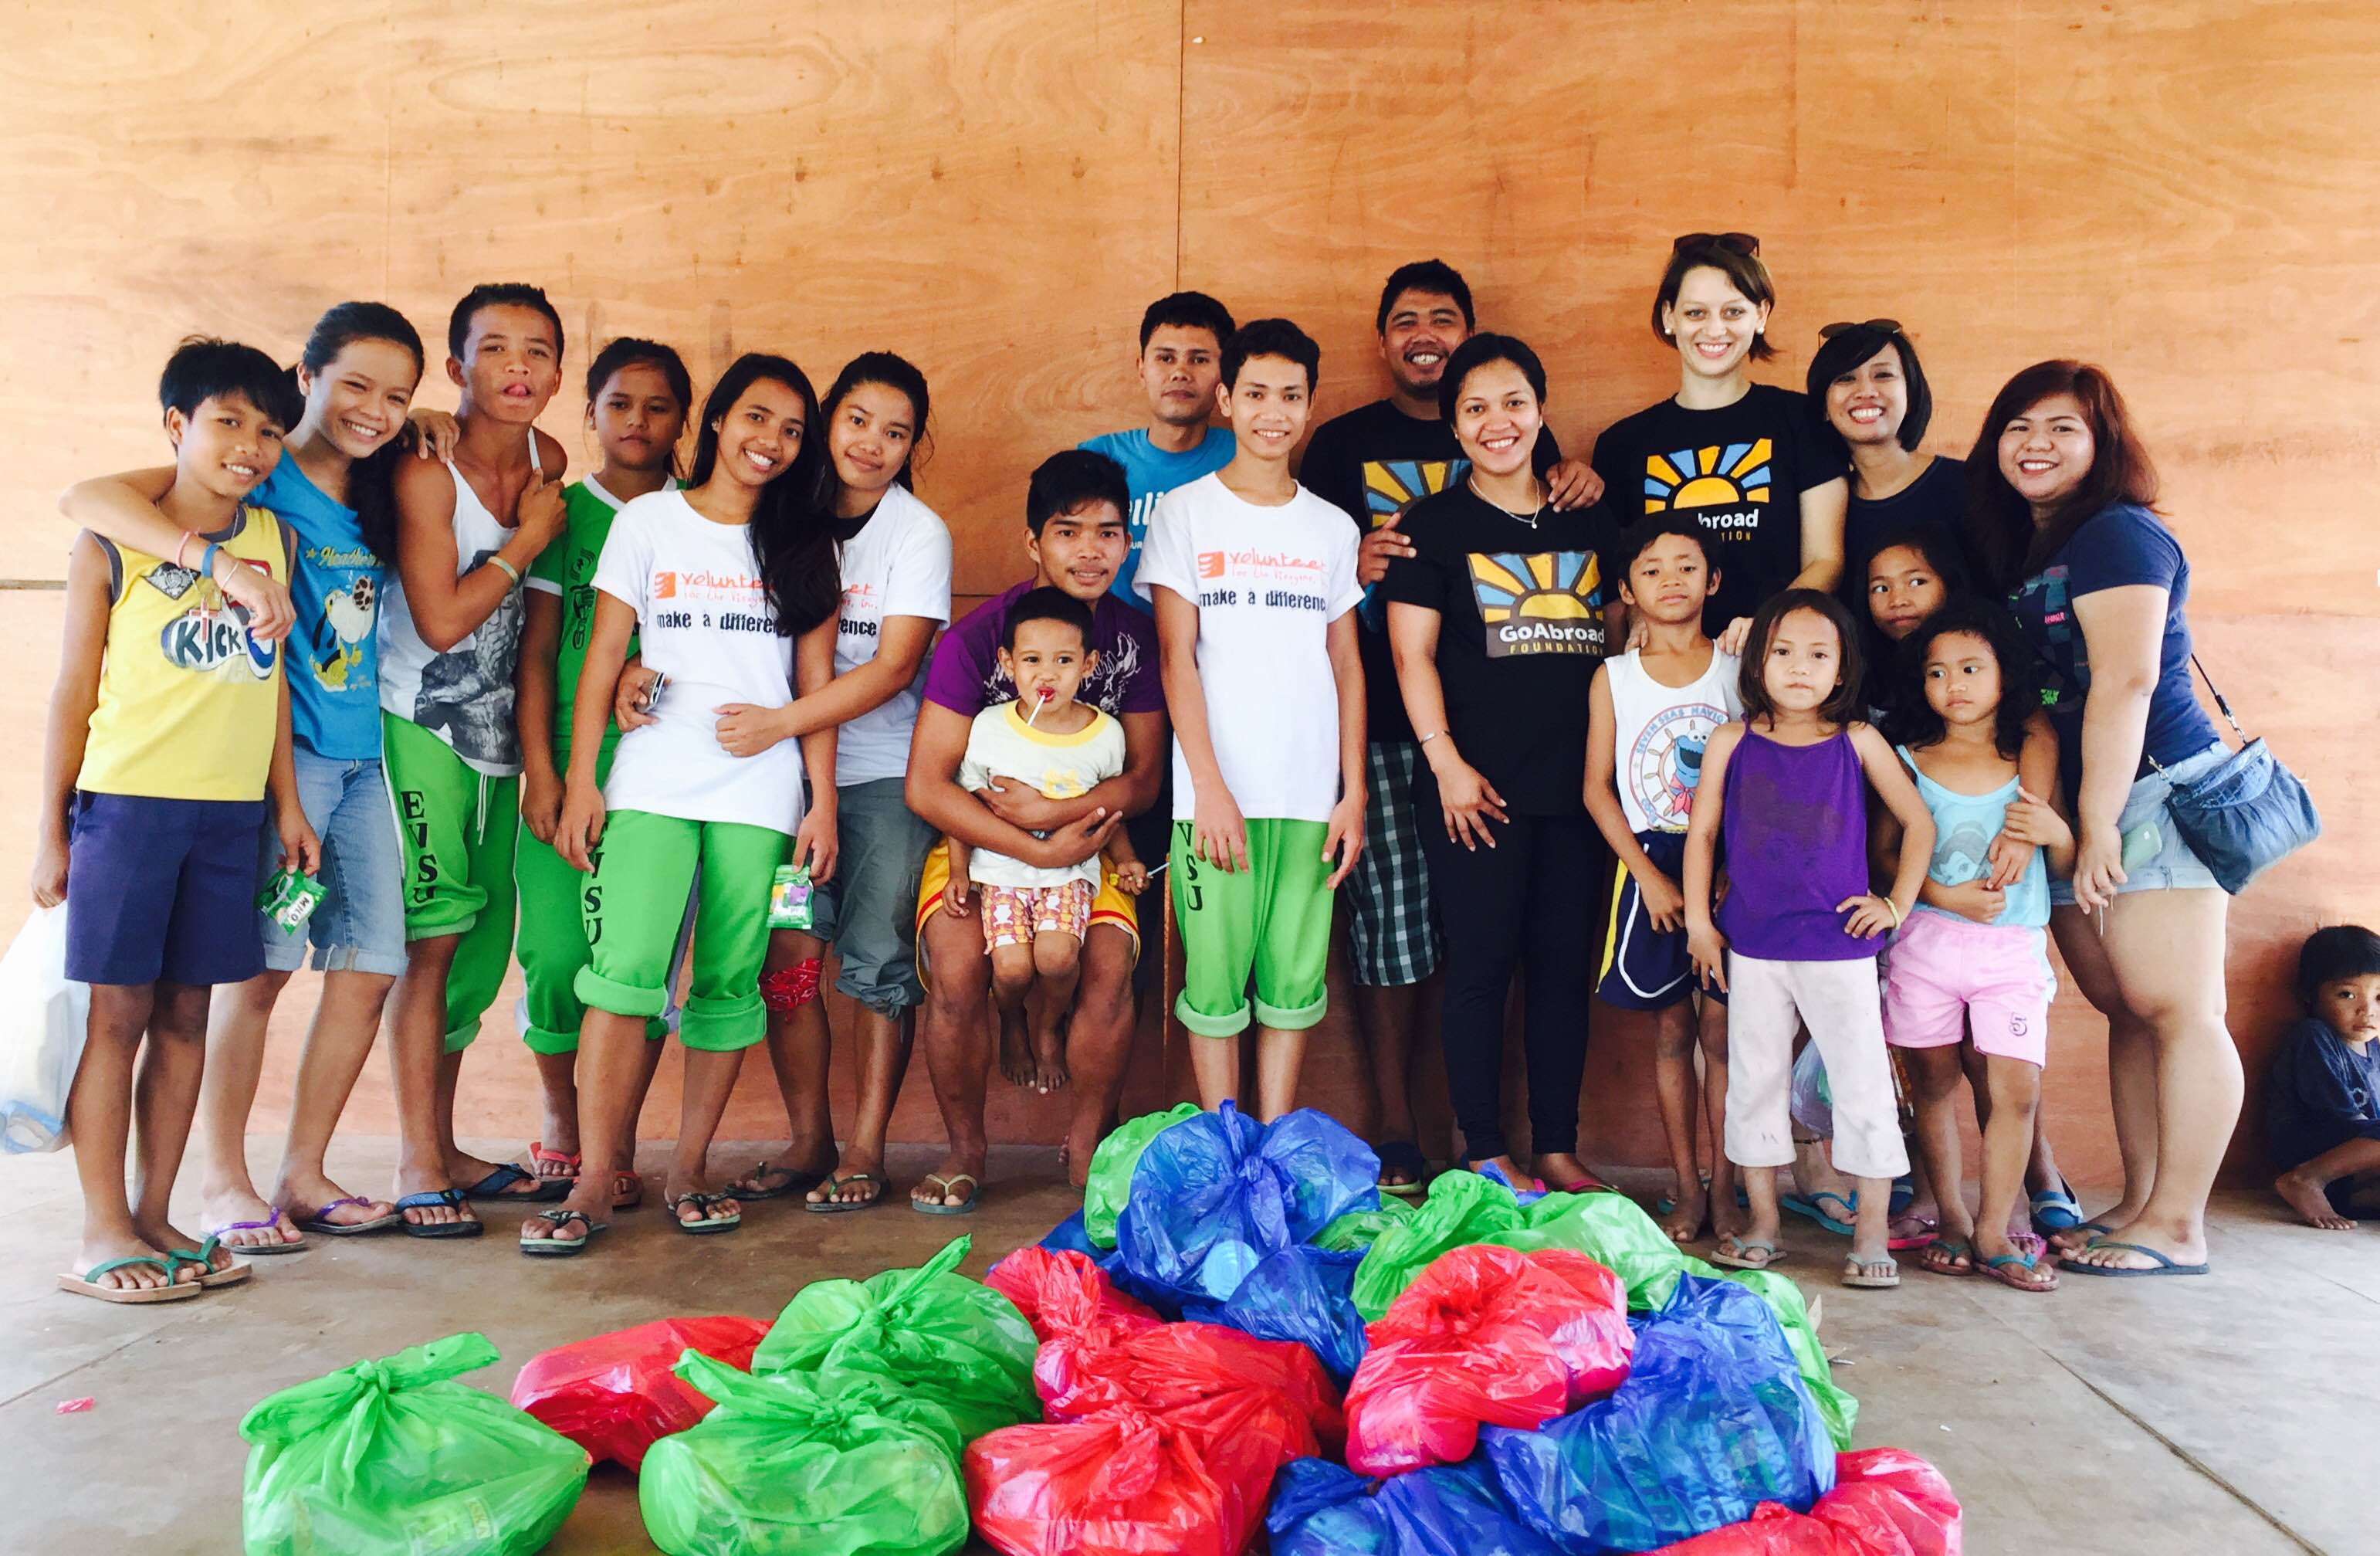 Volunteers and local children in the Philippines